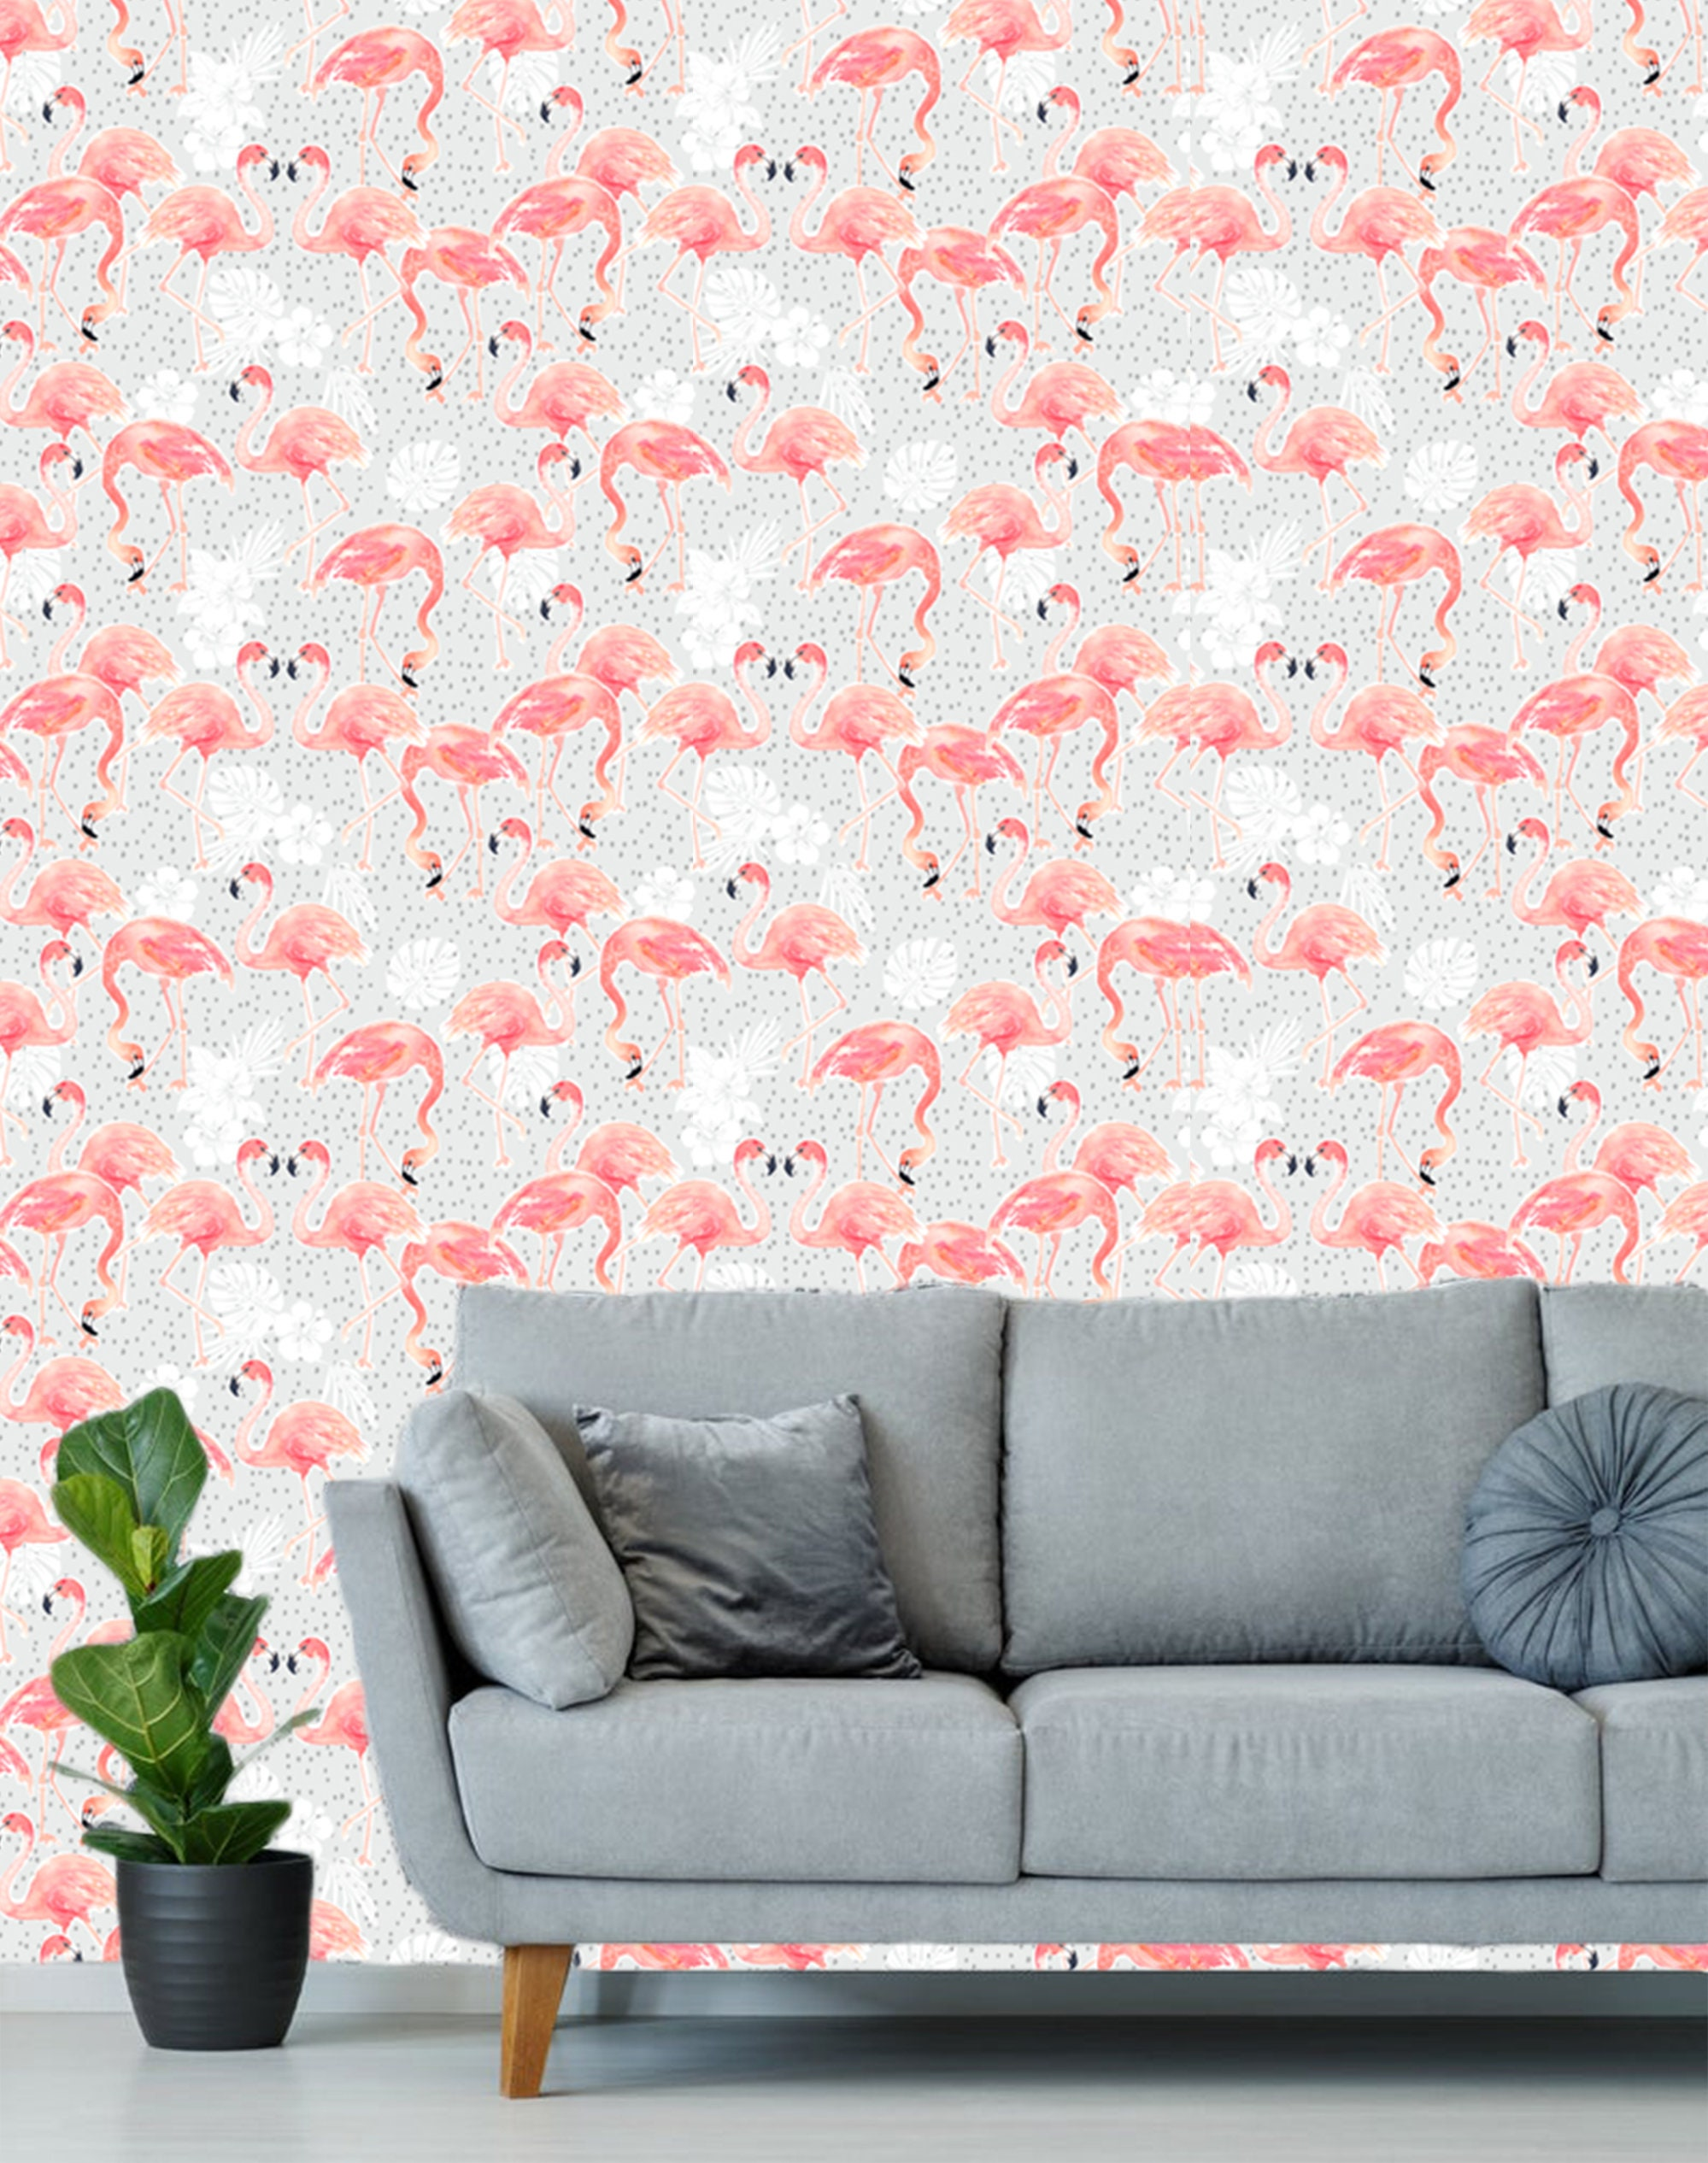 Pink Flamingo Tropical Wallpaper Removable Traditional Wallpaper